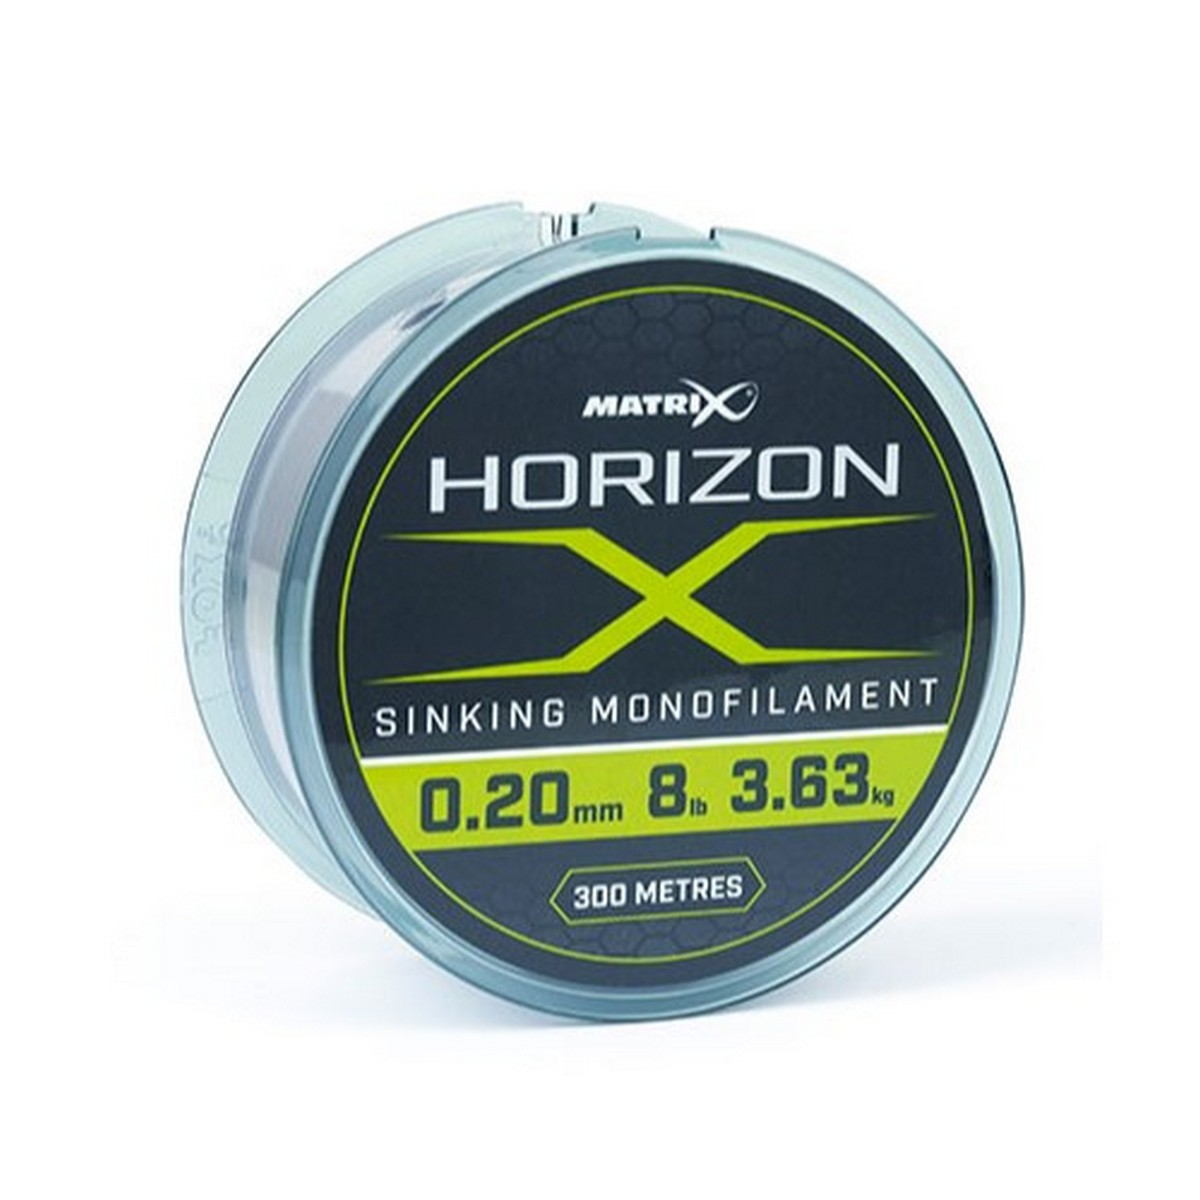 Matrix Horizon X Sinking Monofilament 300m